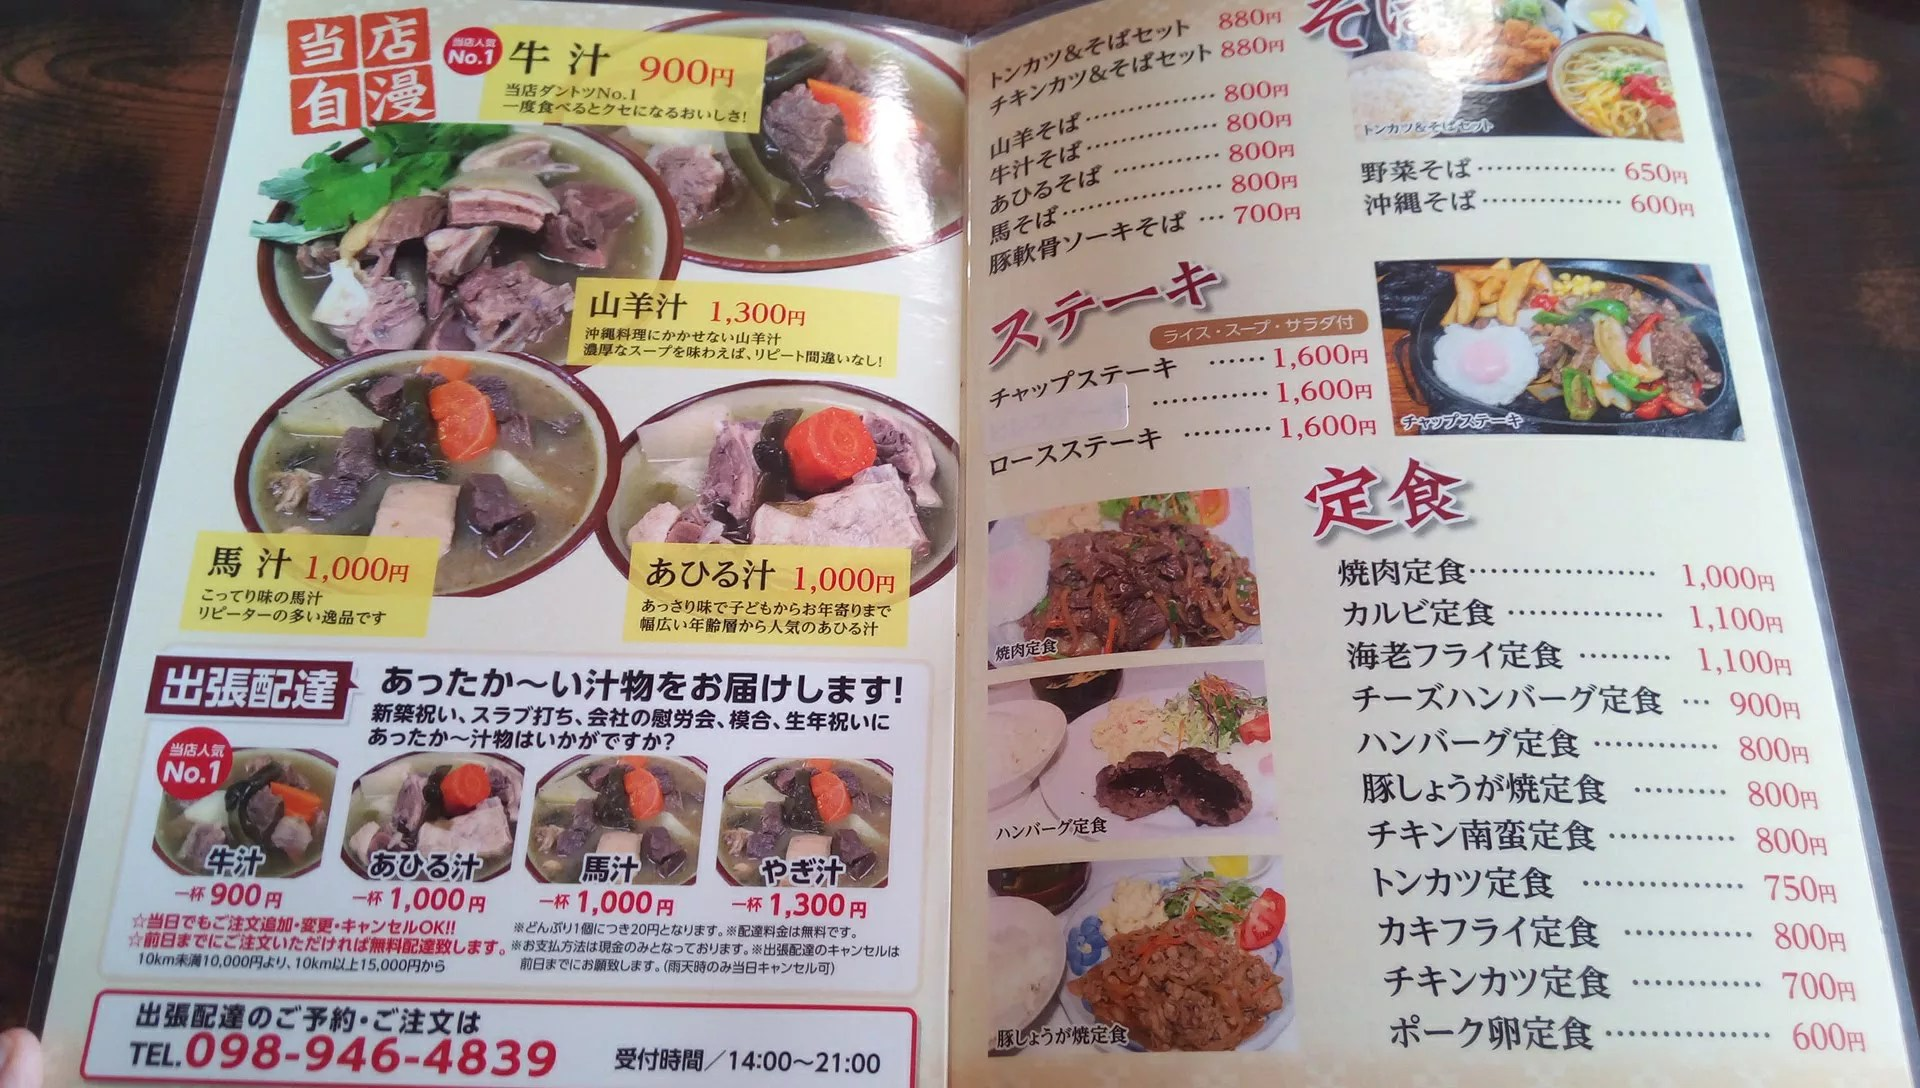 The menu of Manpuku restaurant 1